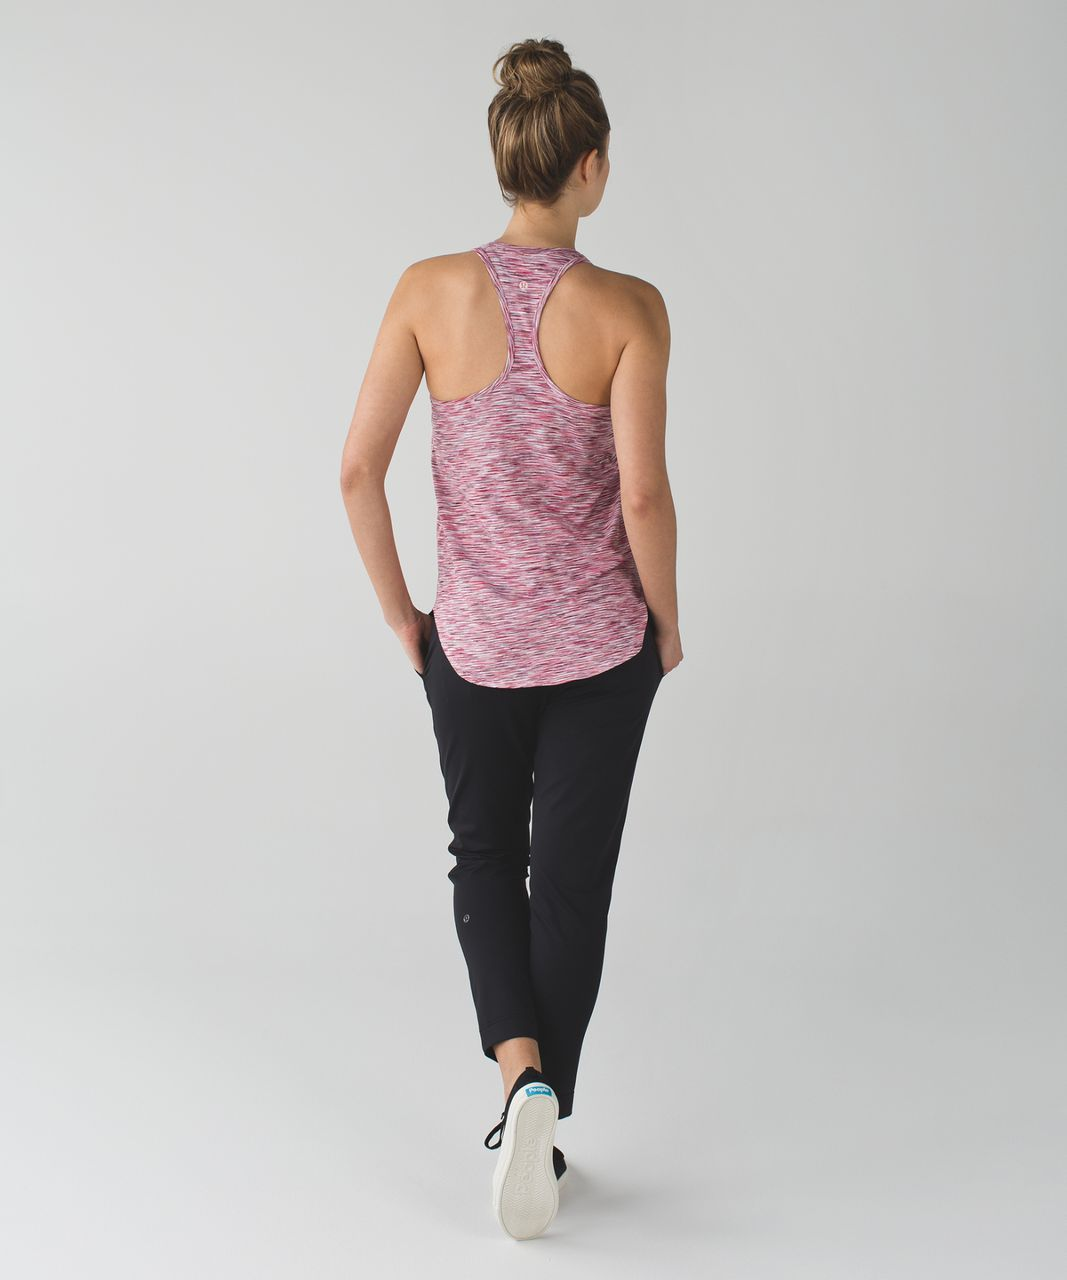 Lululemon Yogi Racer Back III - 4 Color Space Dye White Minty Pink